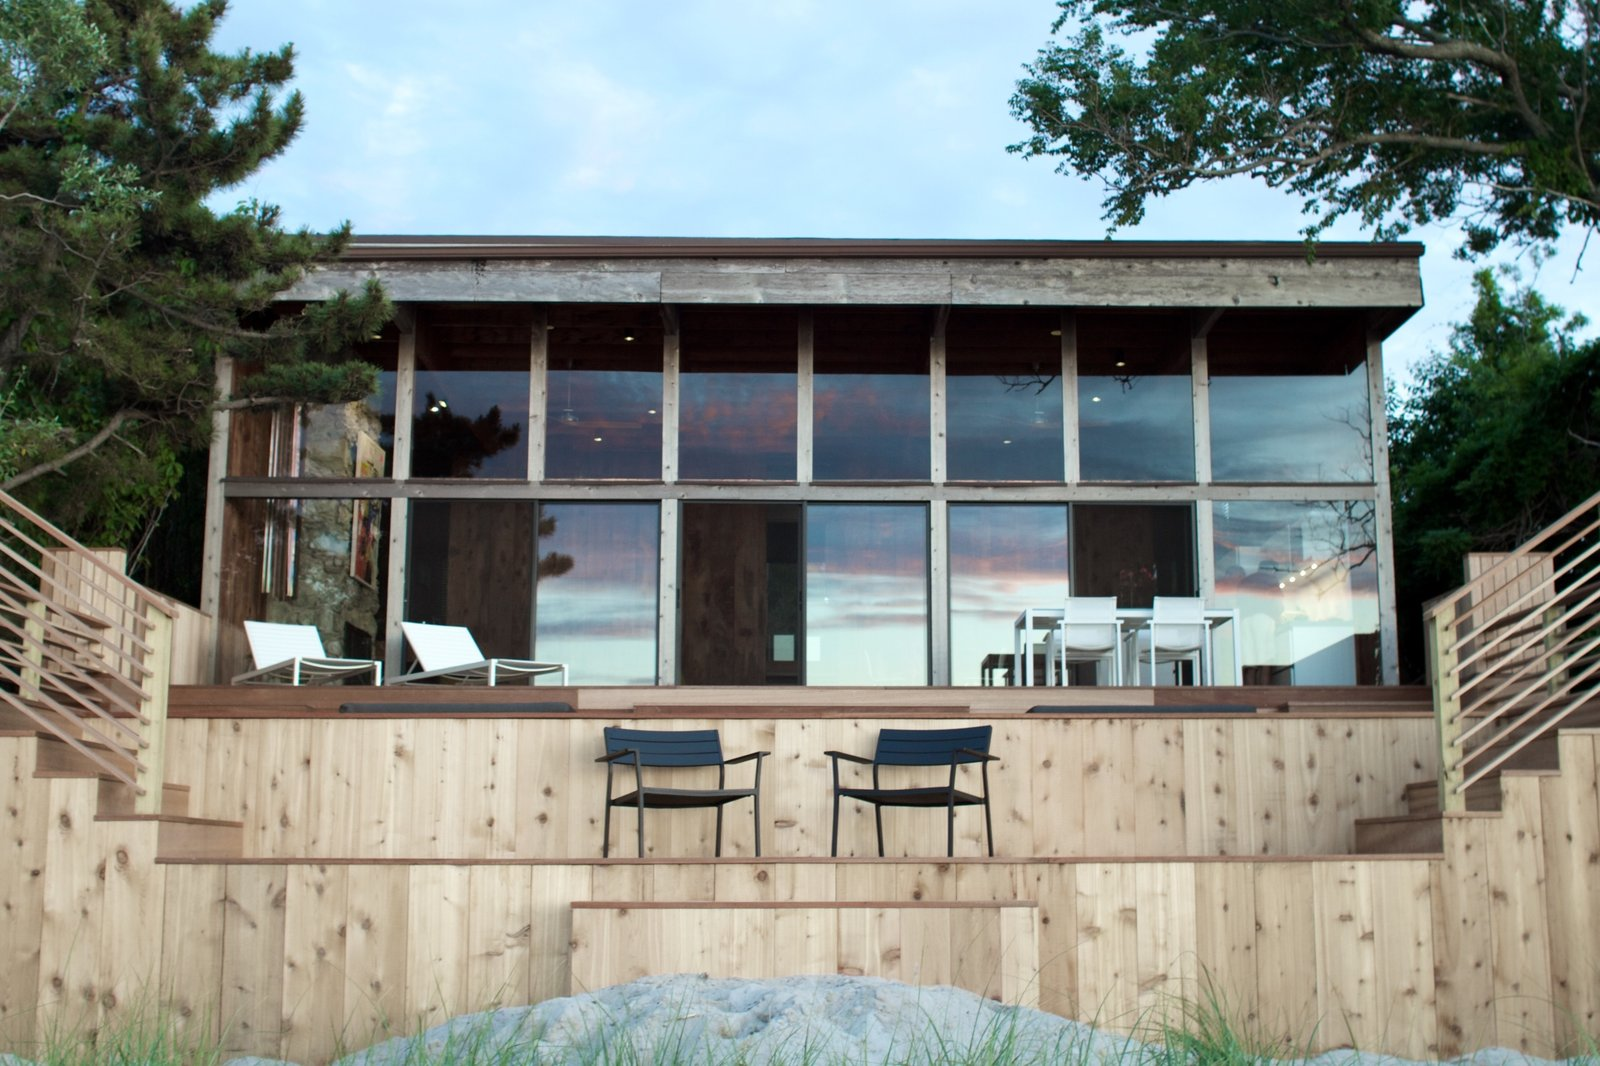 Photo 8 of 10 in A Respectfully Renovated Modern Beach House on Fire Island Asks $1.8M